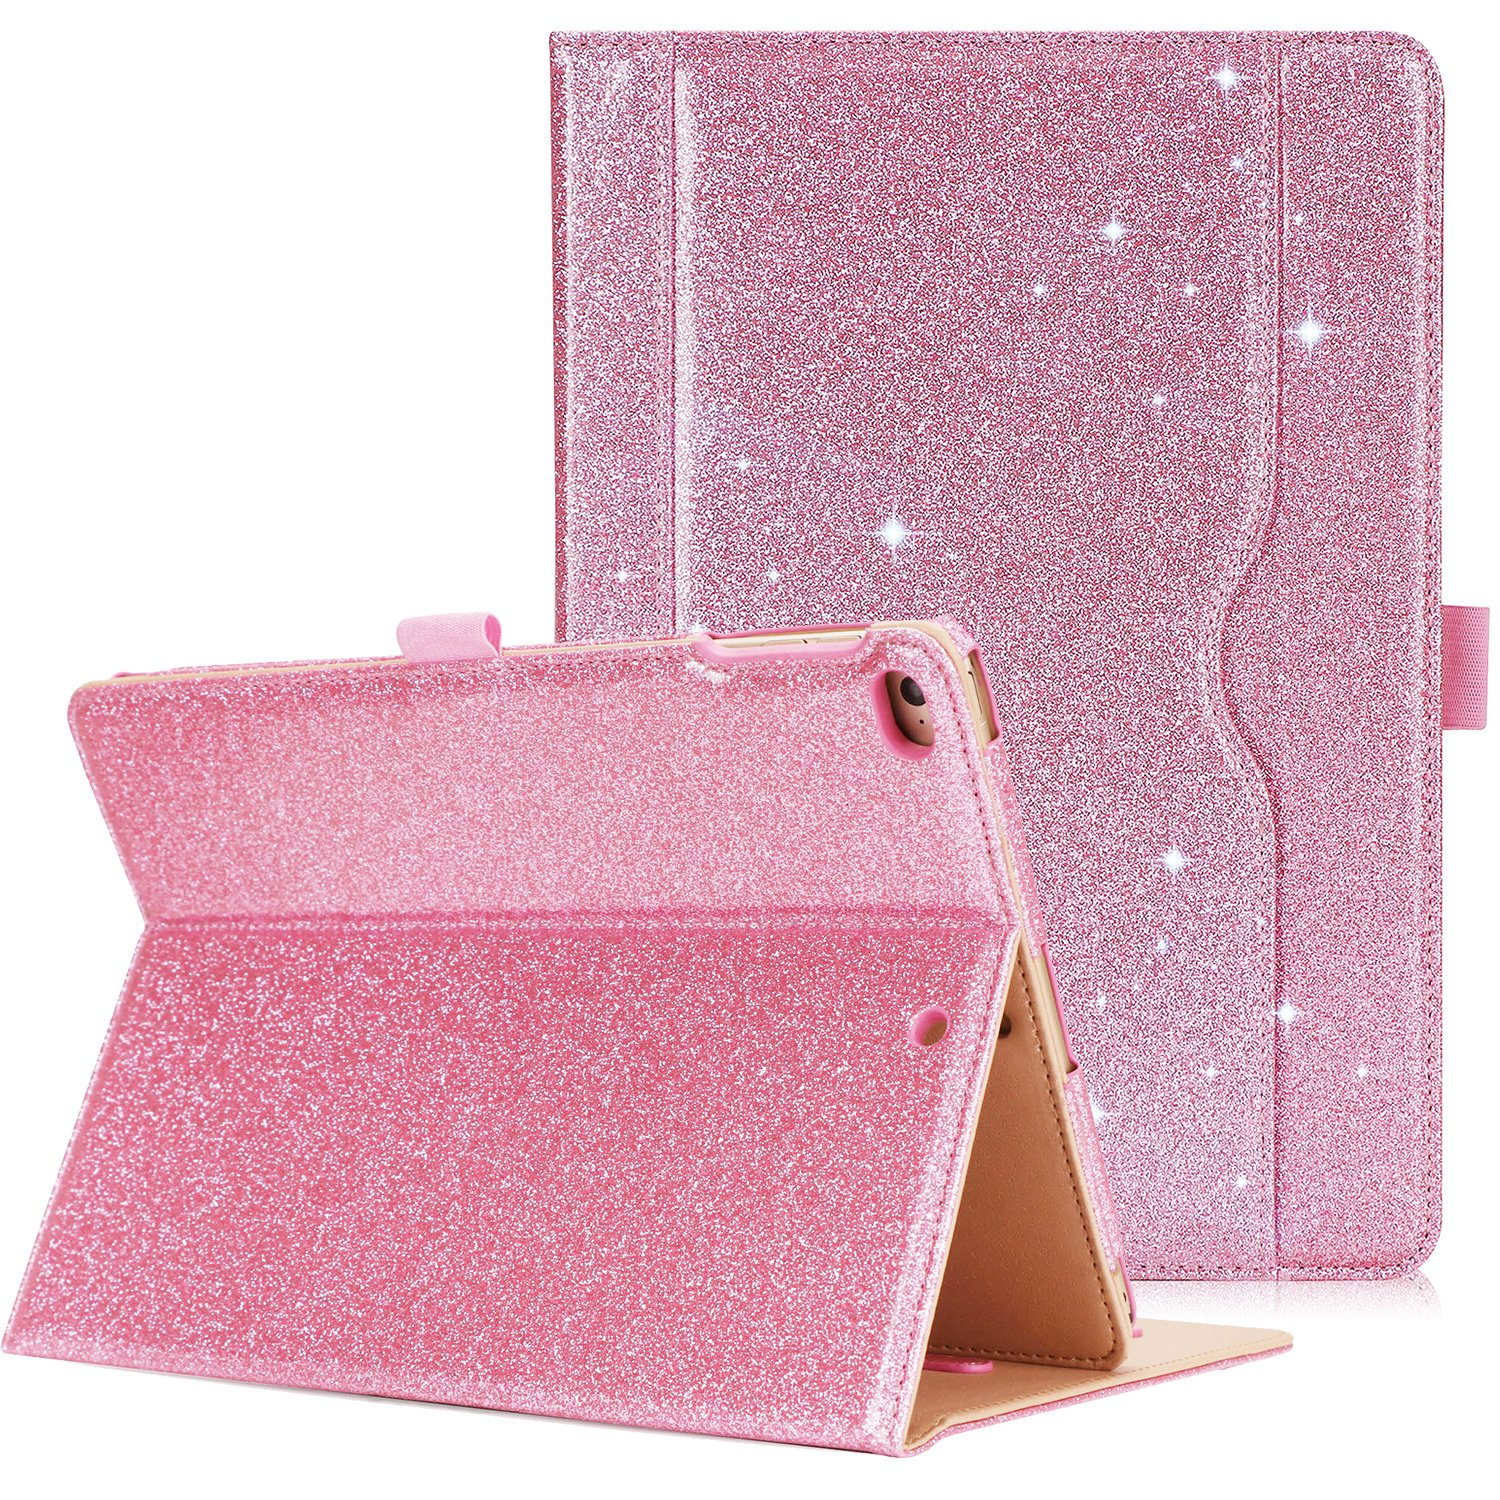 ProCase iPad 9.7 Case 2018/2017 iPad Case - Stand Folio Cover Case for Apple iPad 9.7 inch, Also Fit iPad Air 2/iPad Air -Glitter Pink